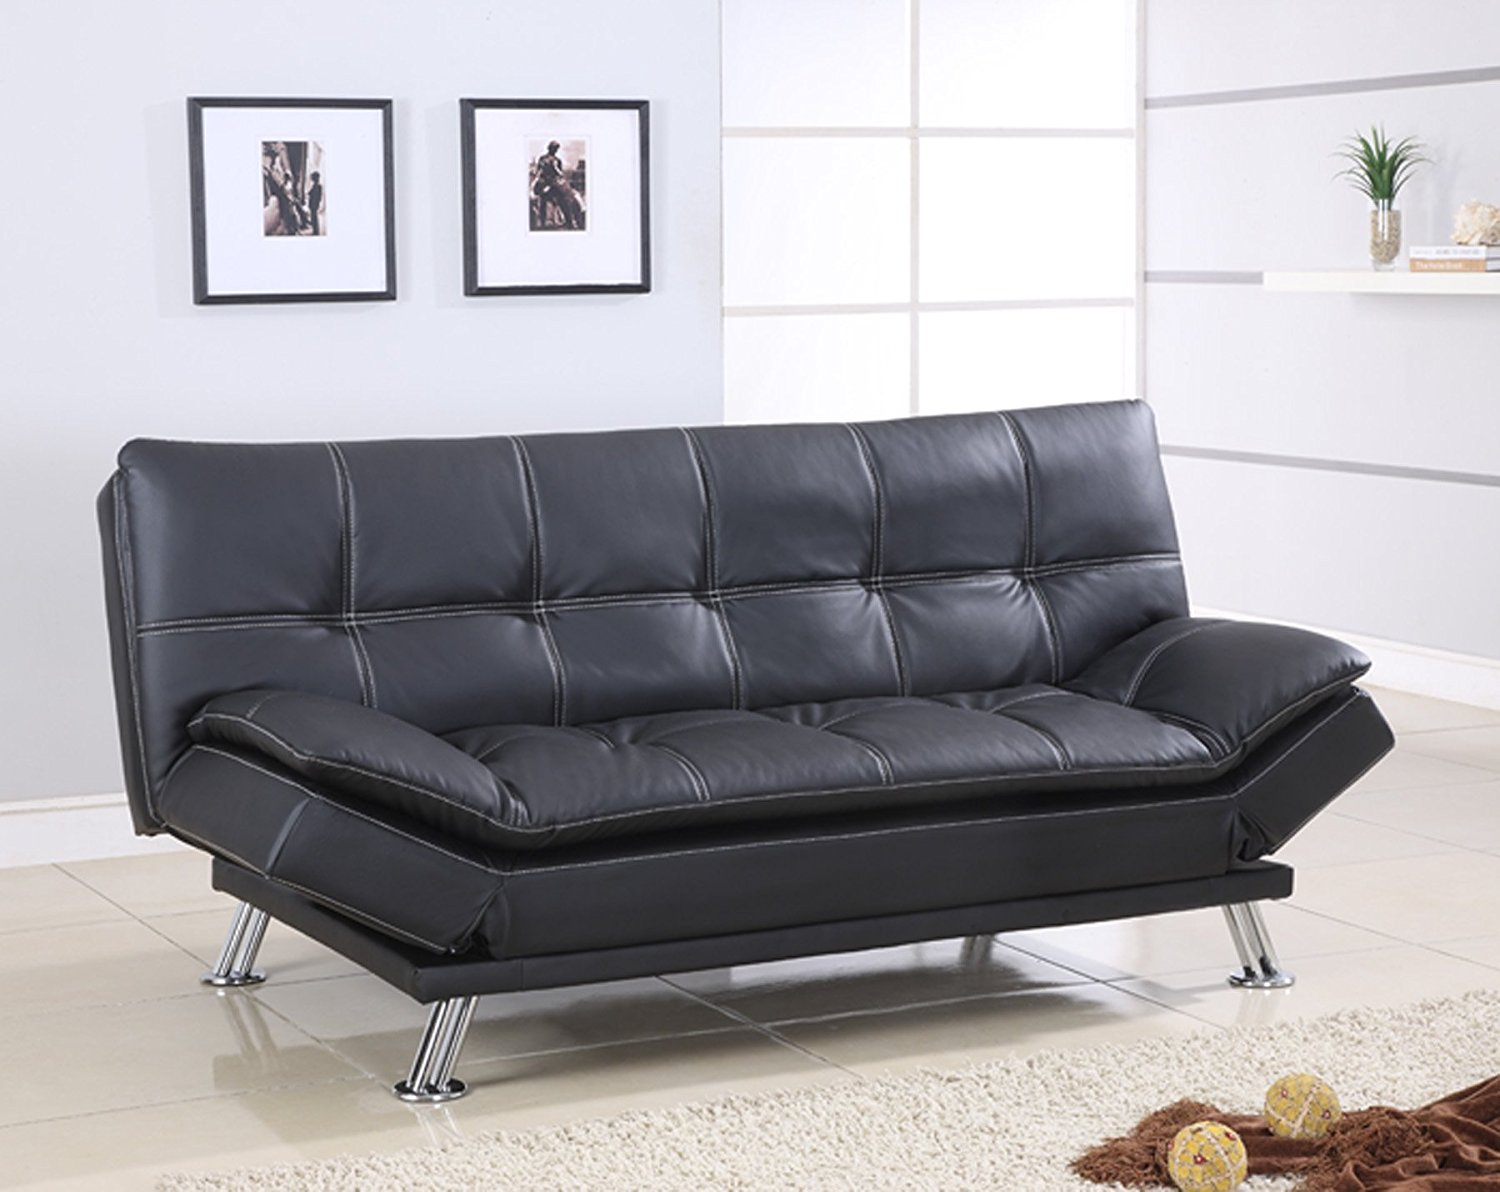 Best Quality Furniture S298 Sofa Bed Modern Black Faux Leather